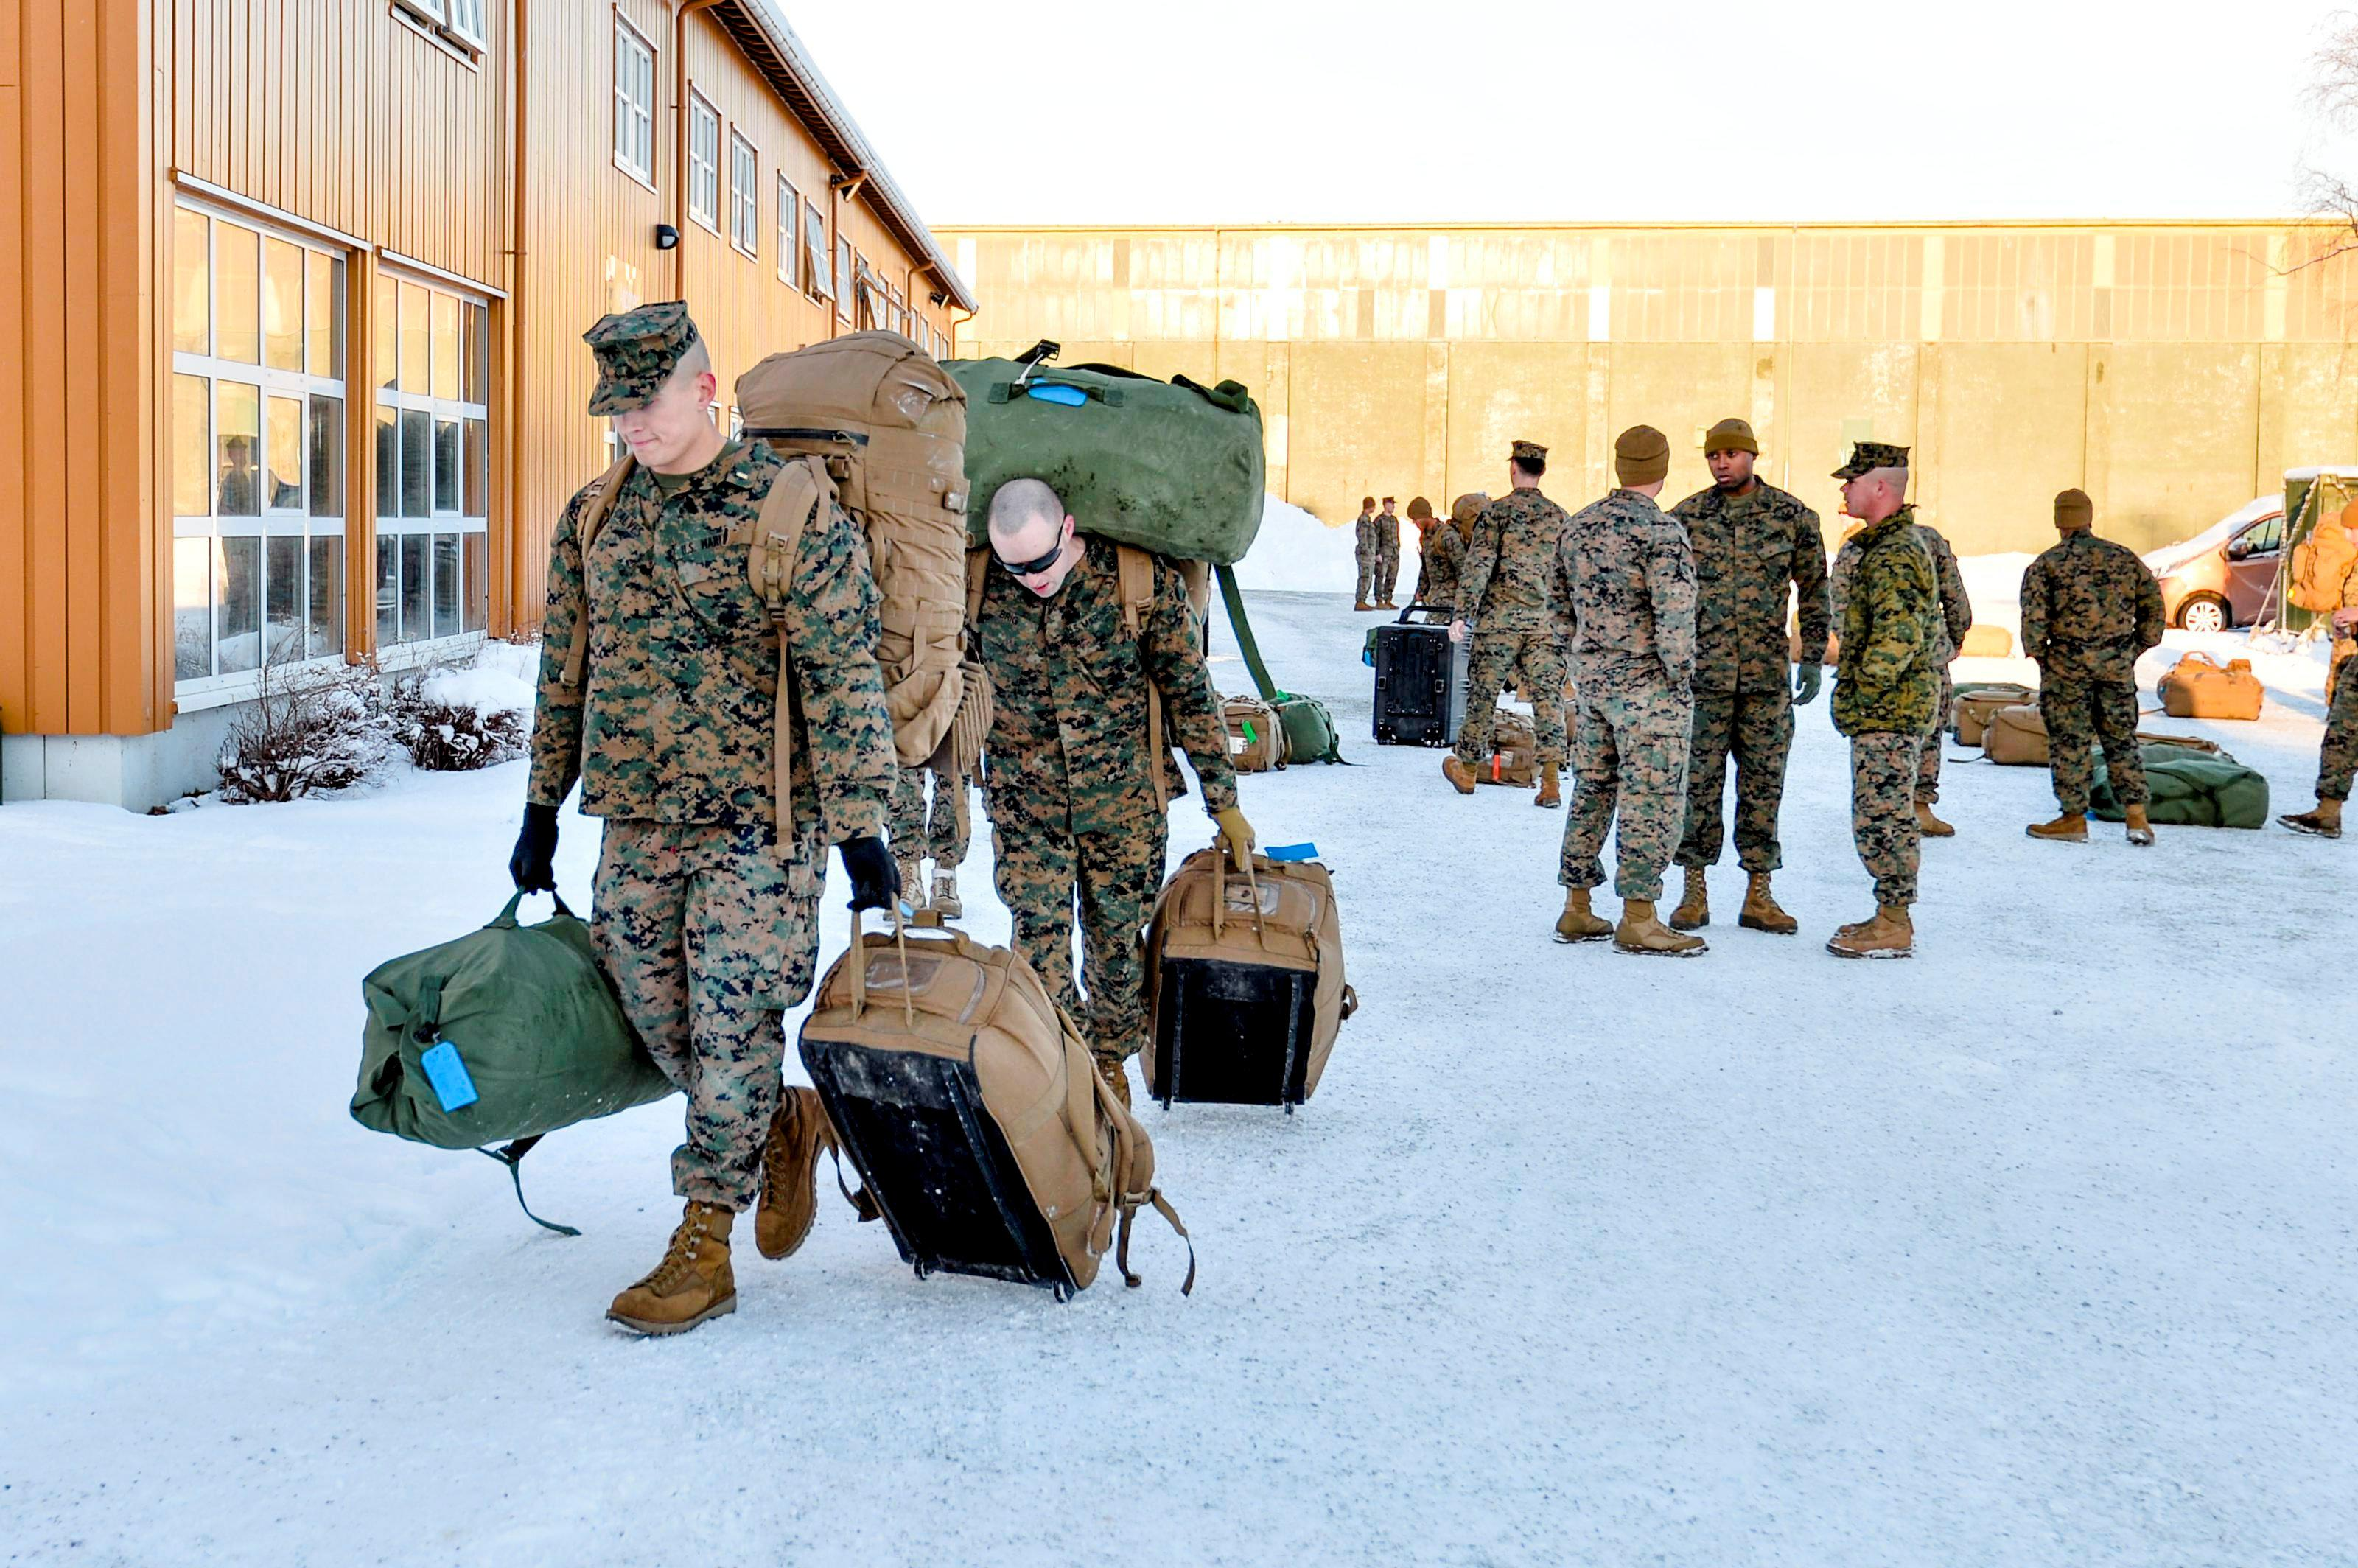 Hundreds of U S  Marines land in Norway, irking Russia - Reuters